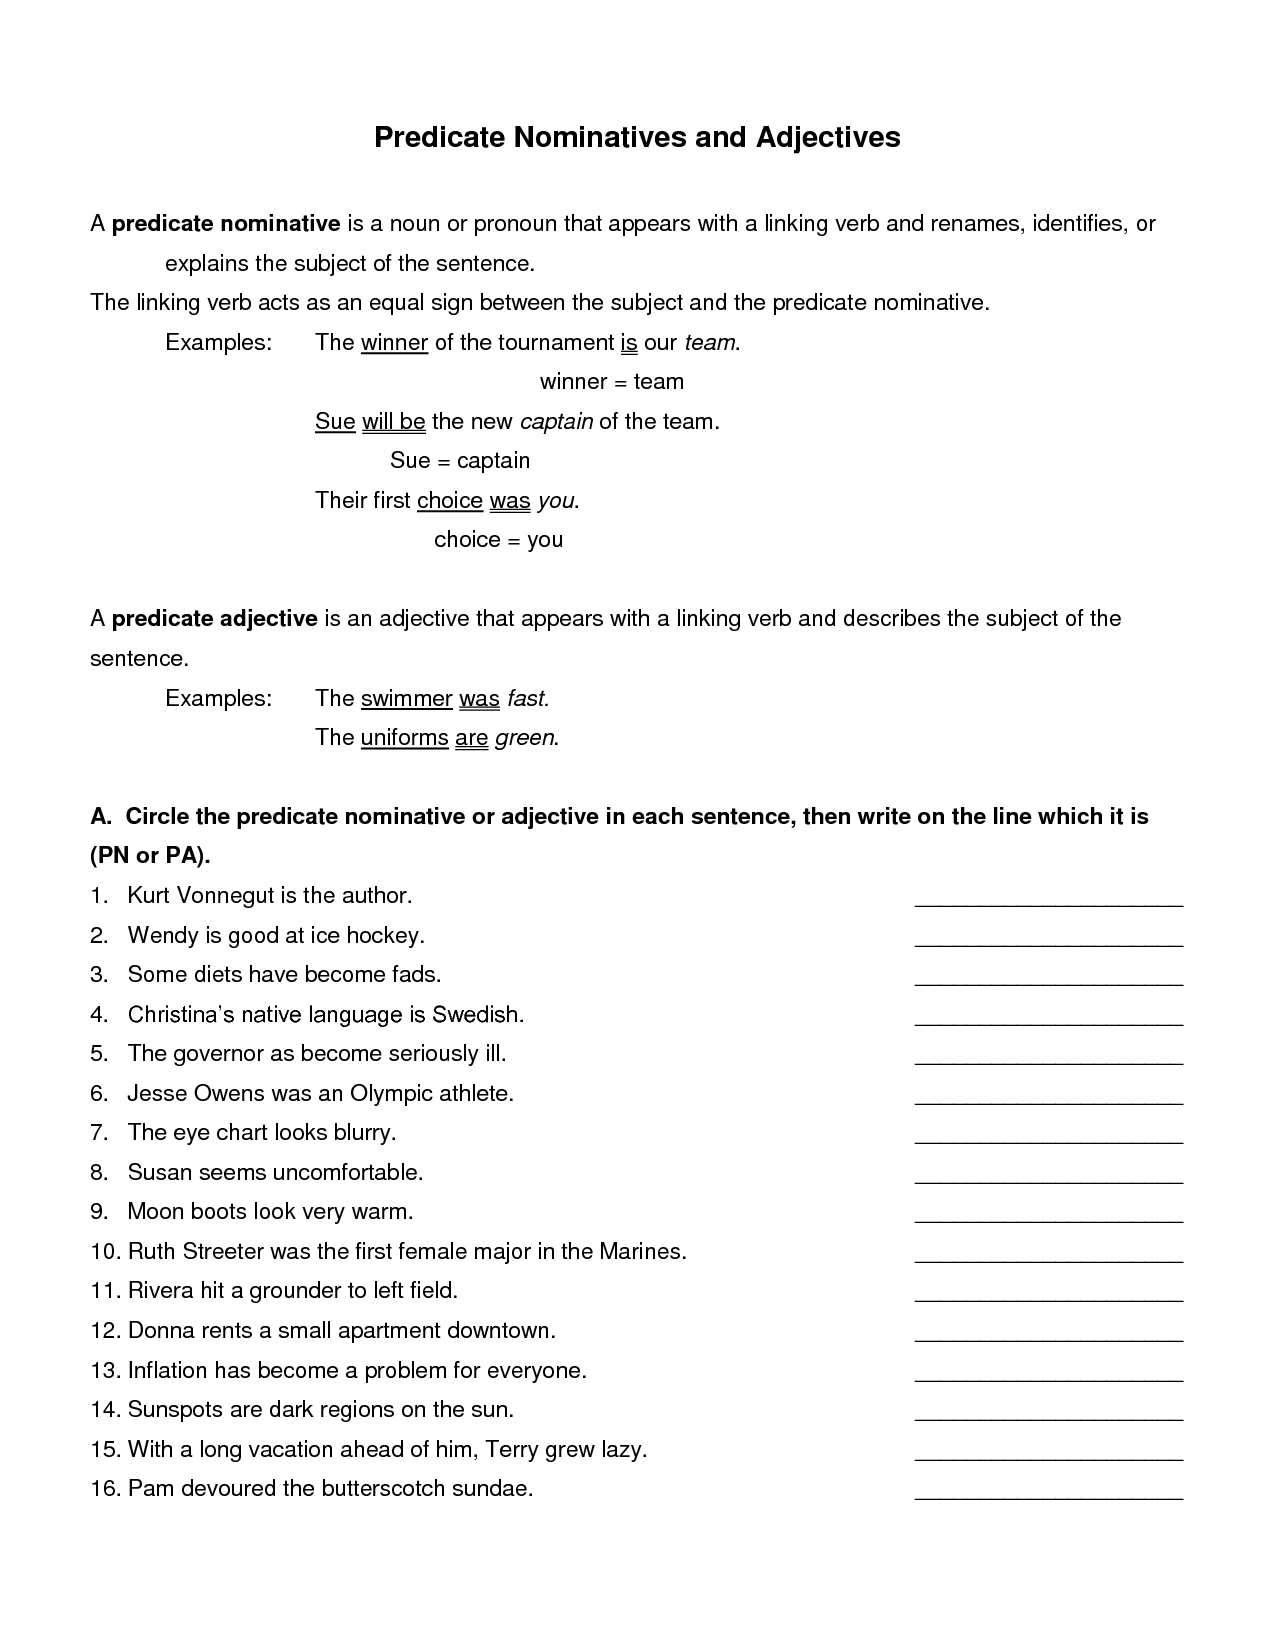 Subject noun and predicate noun worksheet with answers - Google Search    Nouns worksheet [ 1650 x 1275 Pixel ]